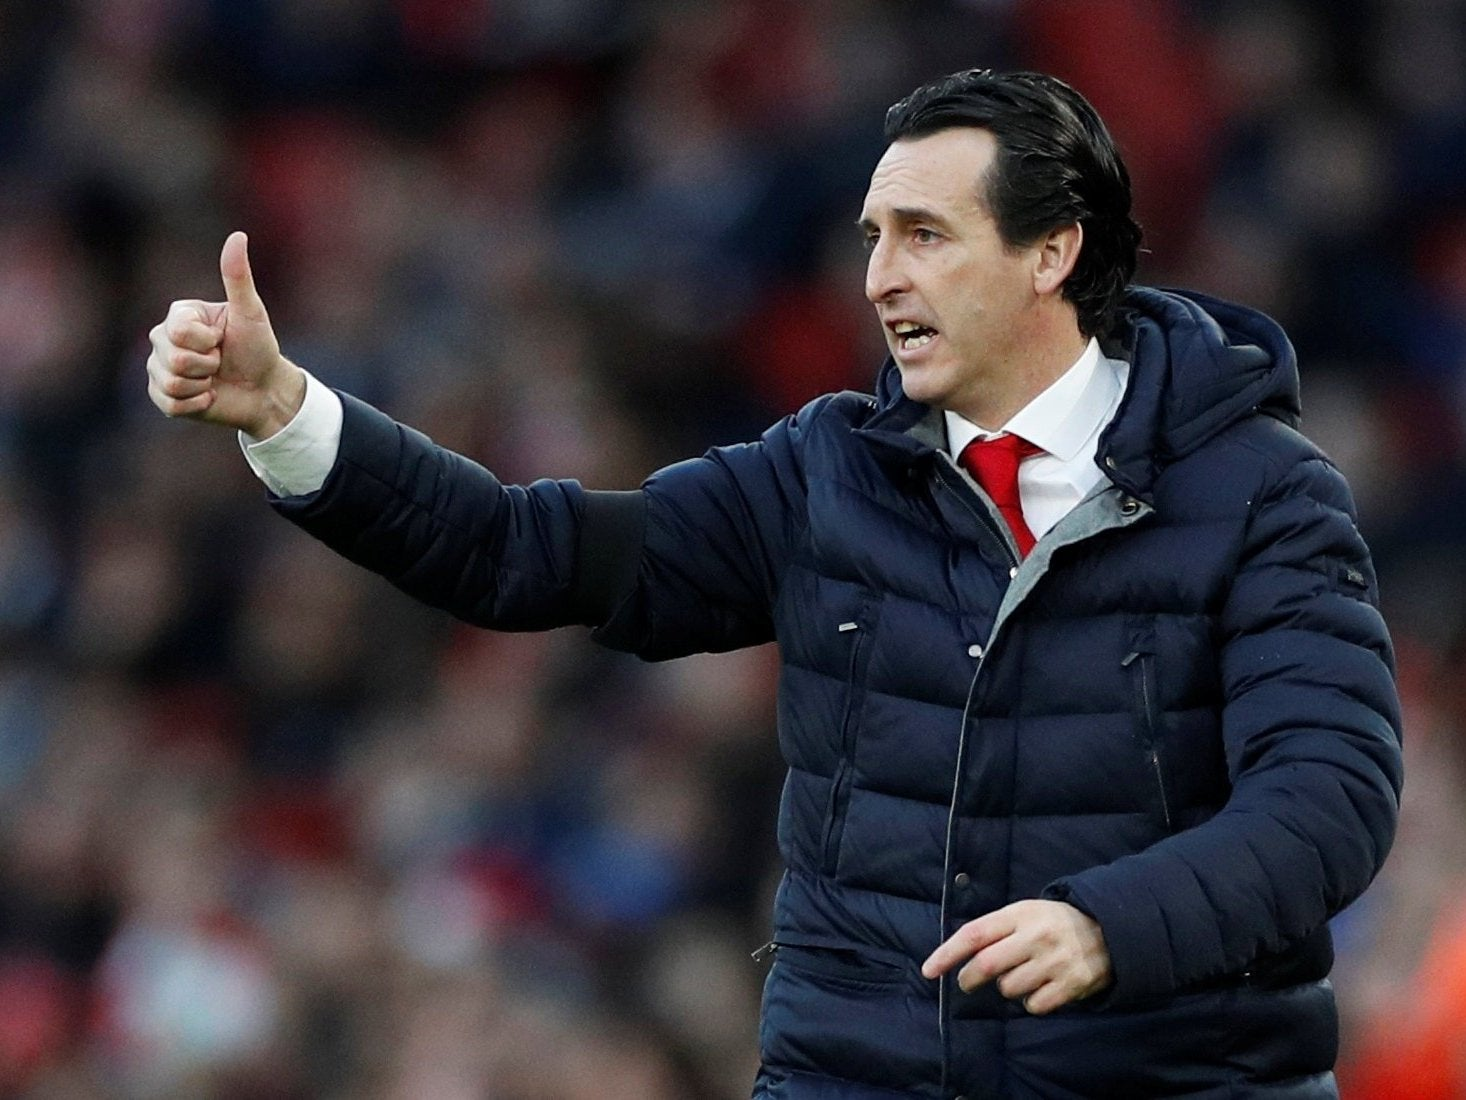 Arsenal teams news: Unai Emery's defensive woes finally eased for Premier League clash at West Ham